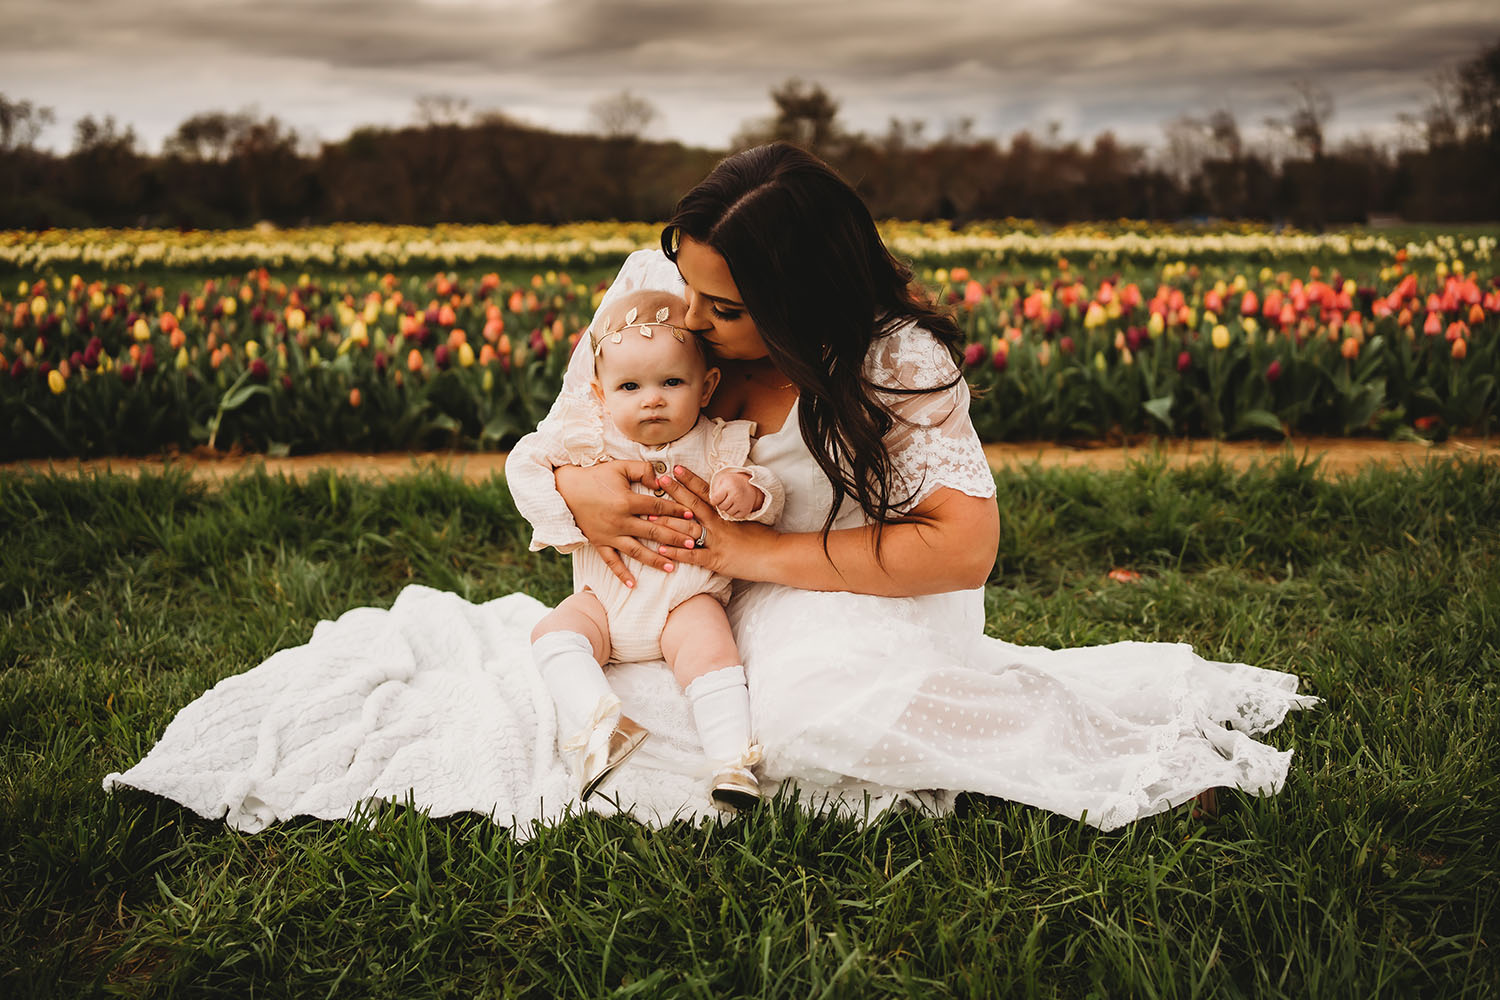 A woman in a white dress holds her baby daughter in her lap as she sits in green grass with a field of flowers behind her. Photo by Valerie Clark